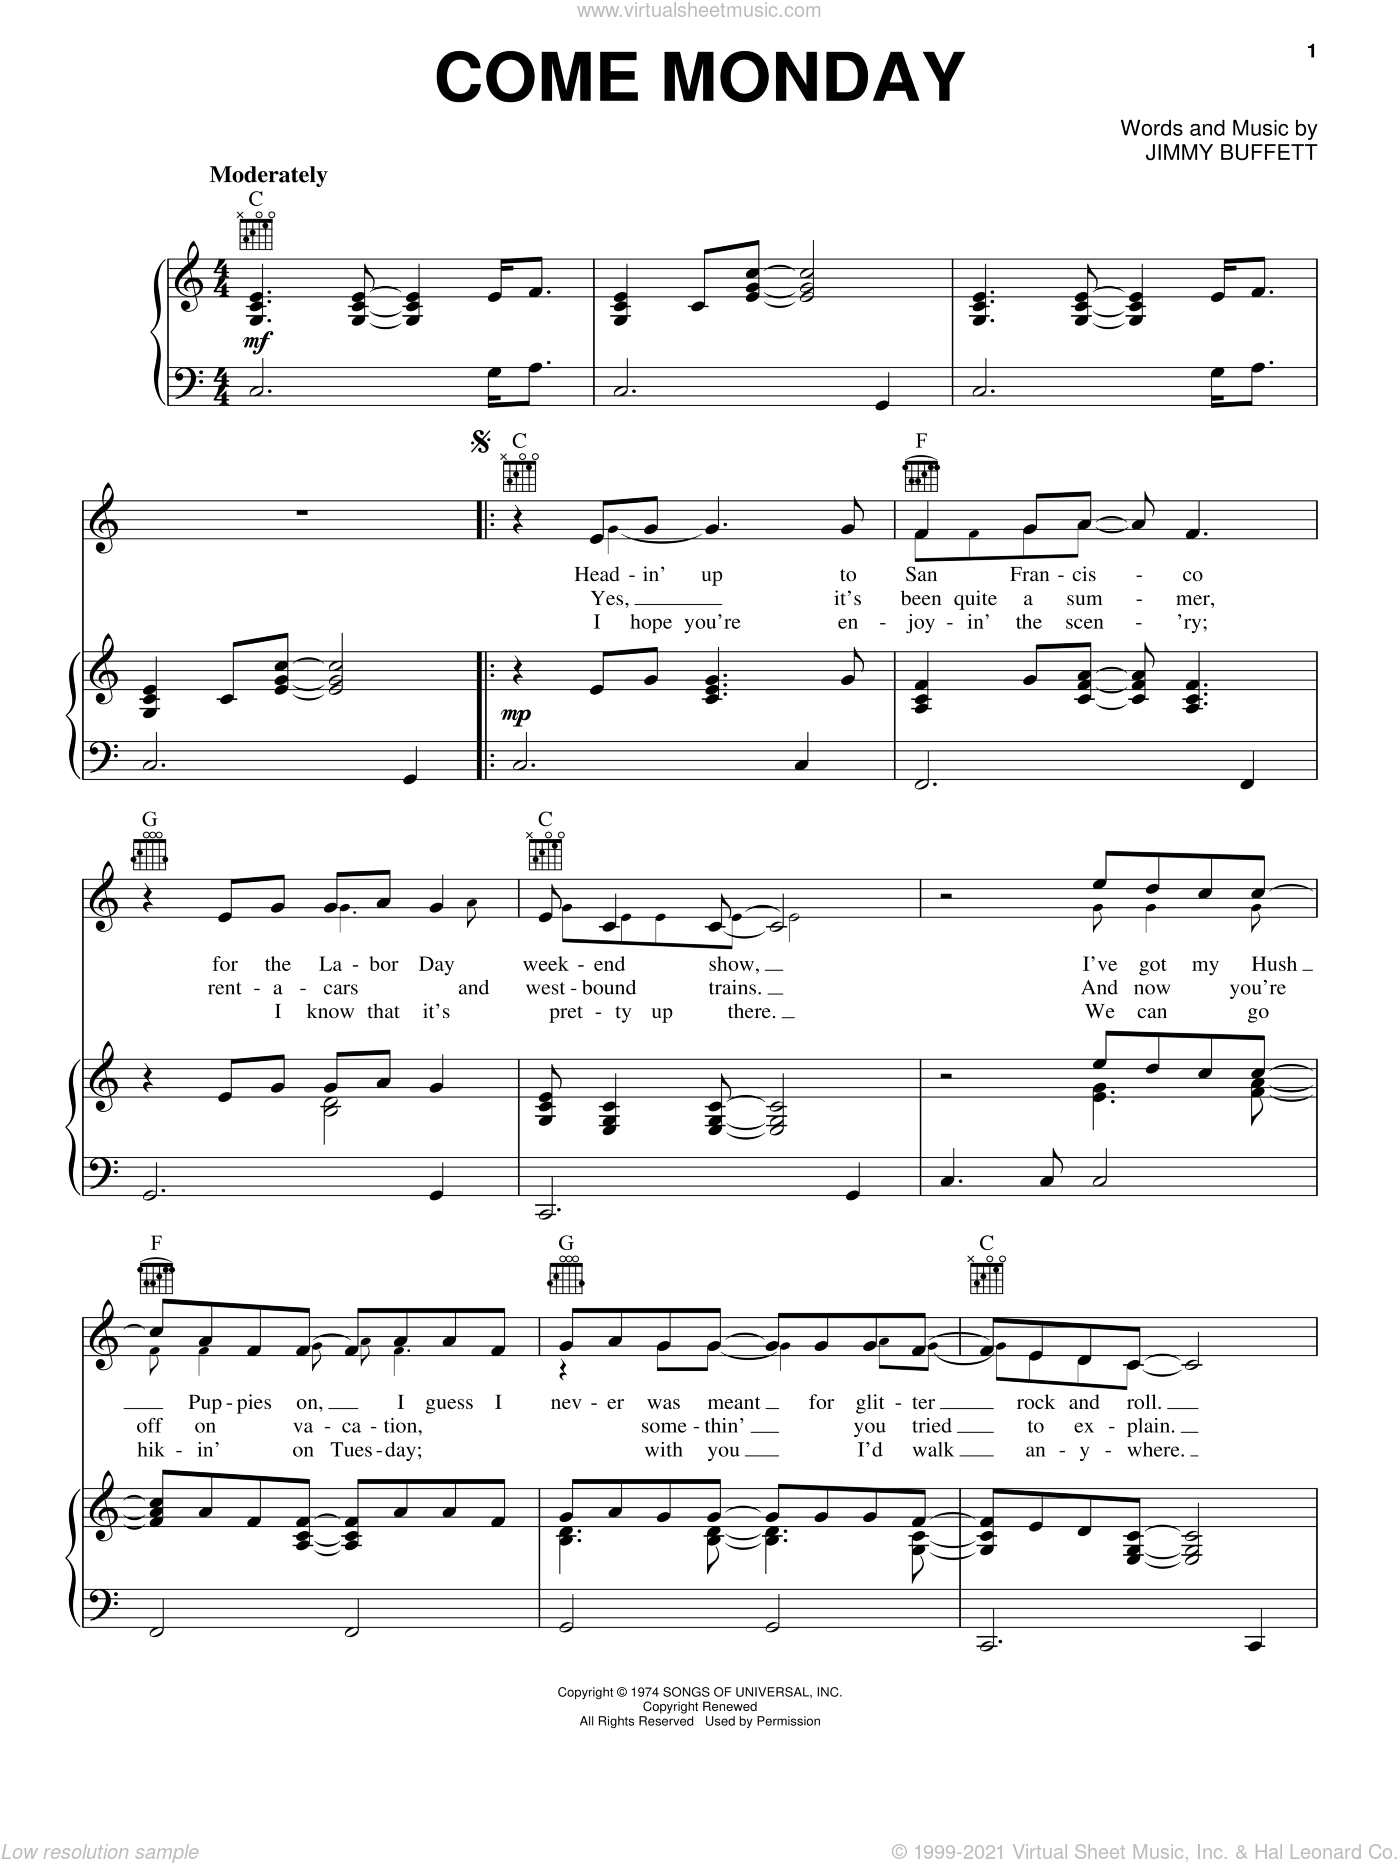 Come Monday sheet music for voice, piano or guitar by Jimmy Buffett. Score Image Preview.